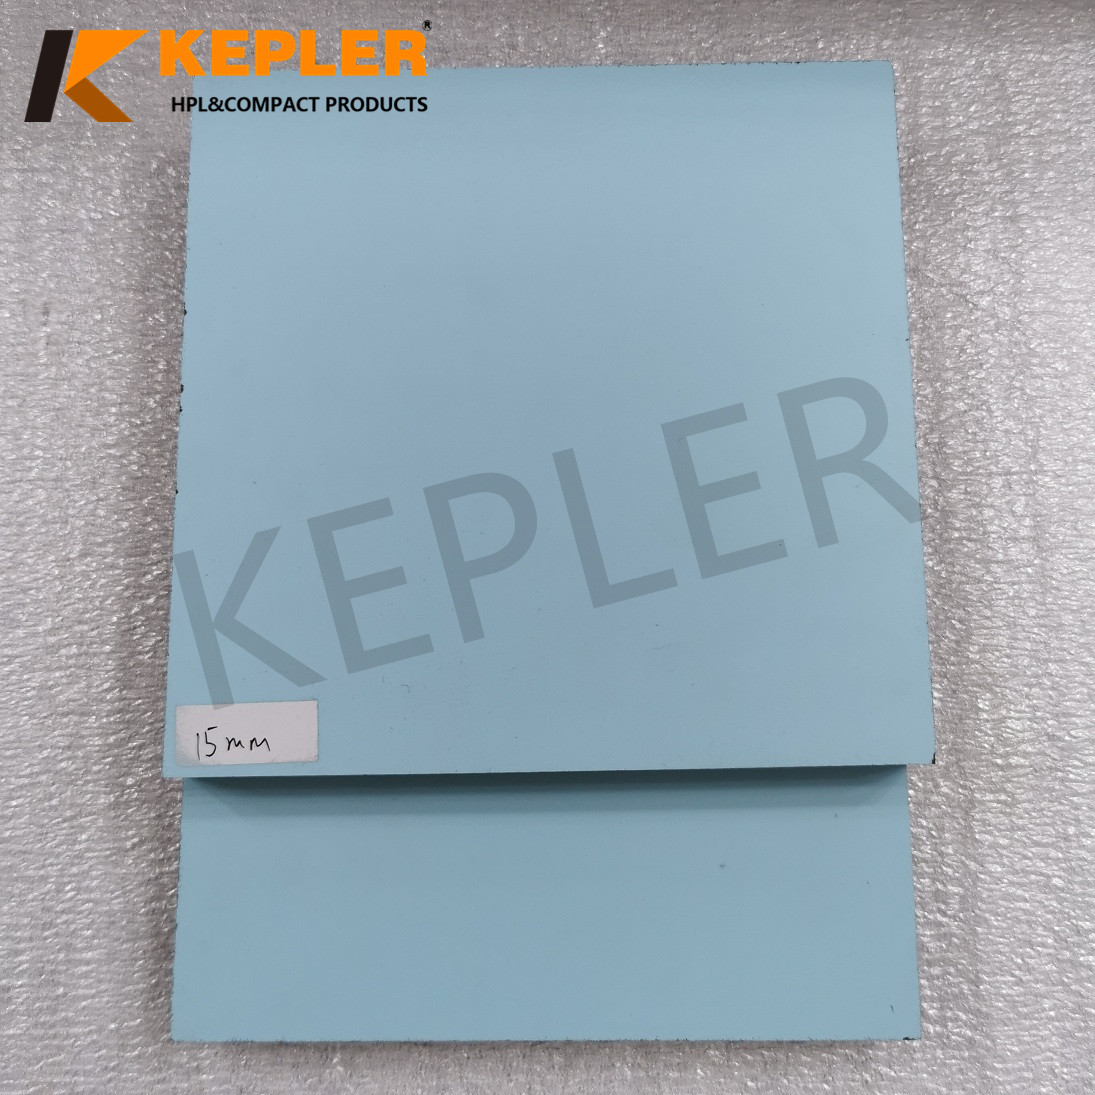 Kepler 15mm Solid Color Chemical Resistant HPL Compact Laminate Board